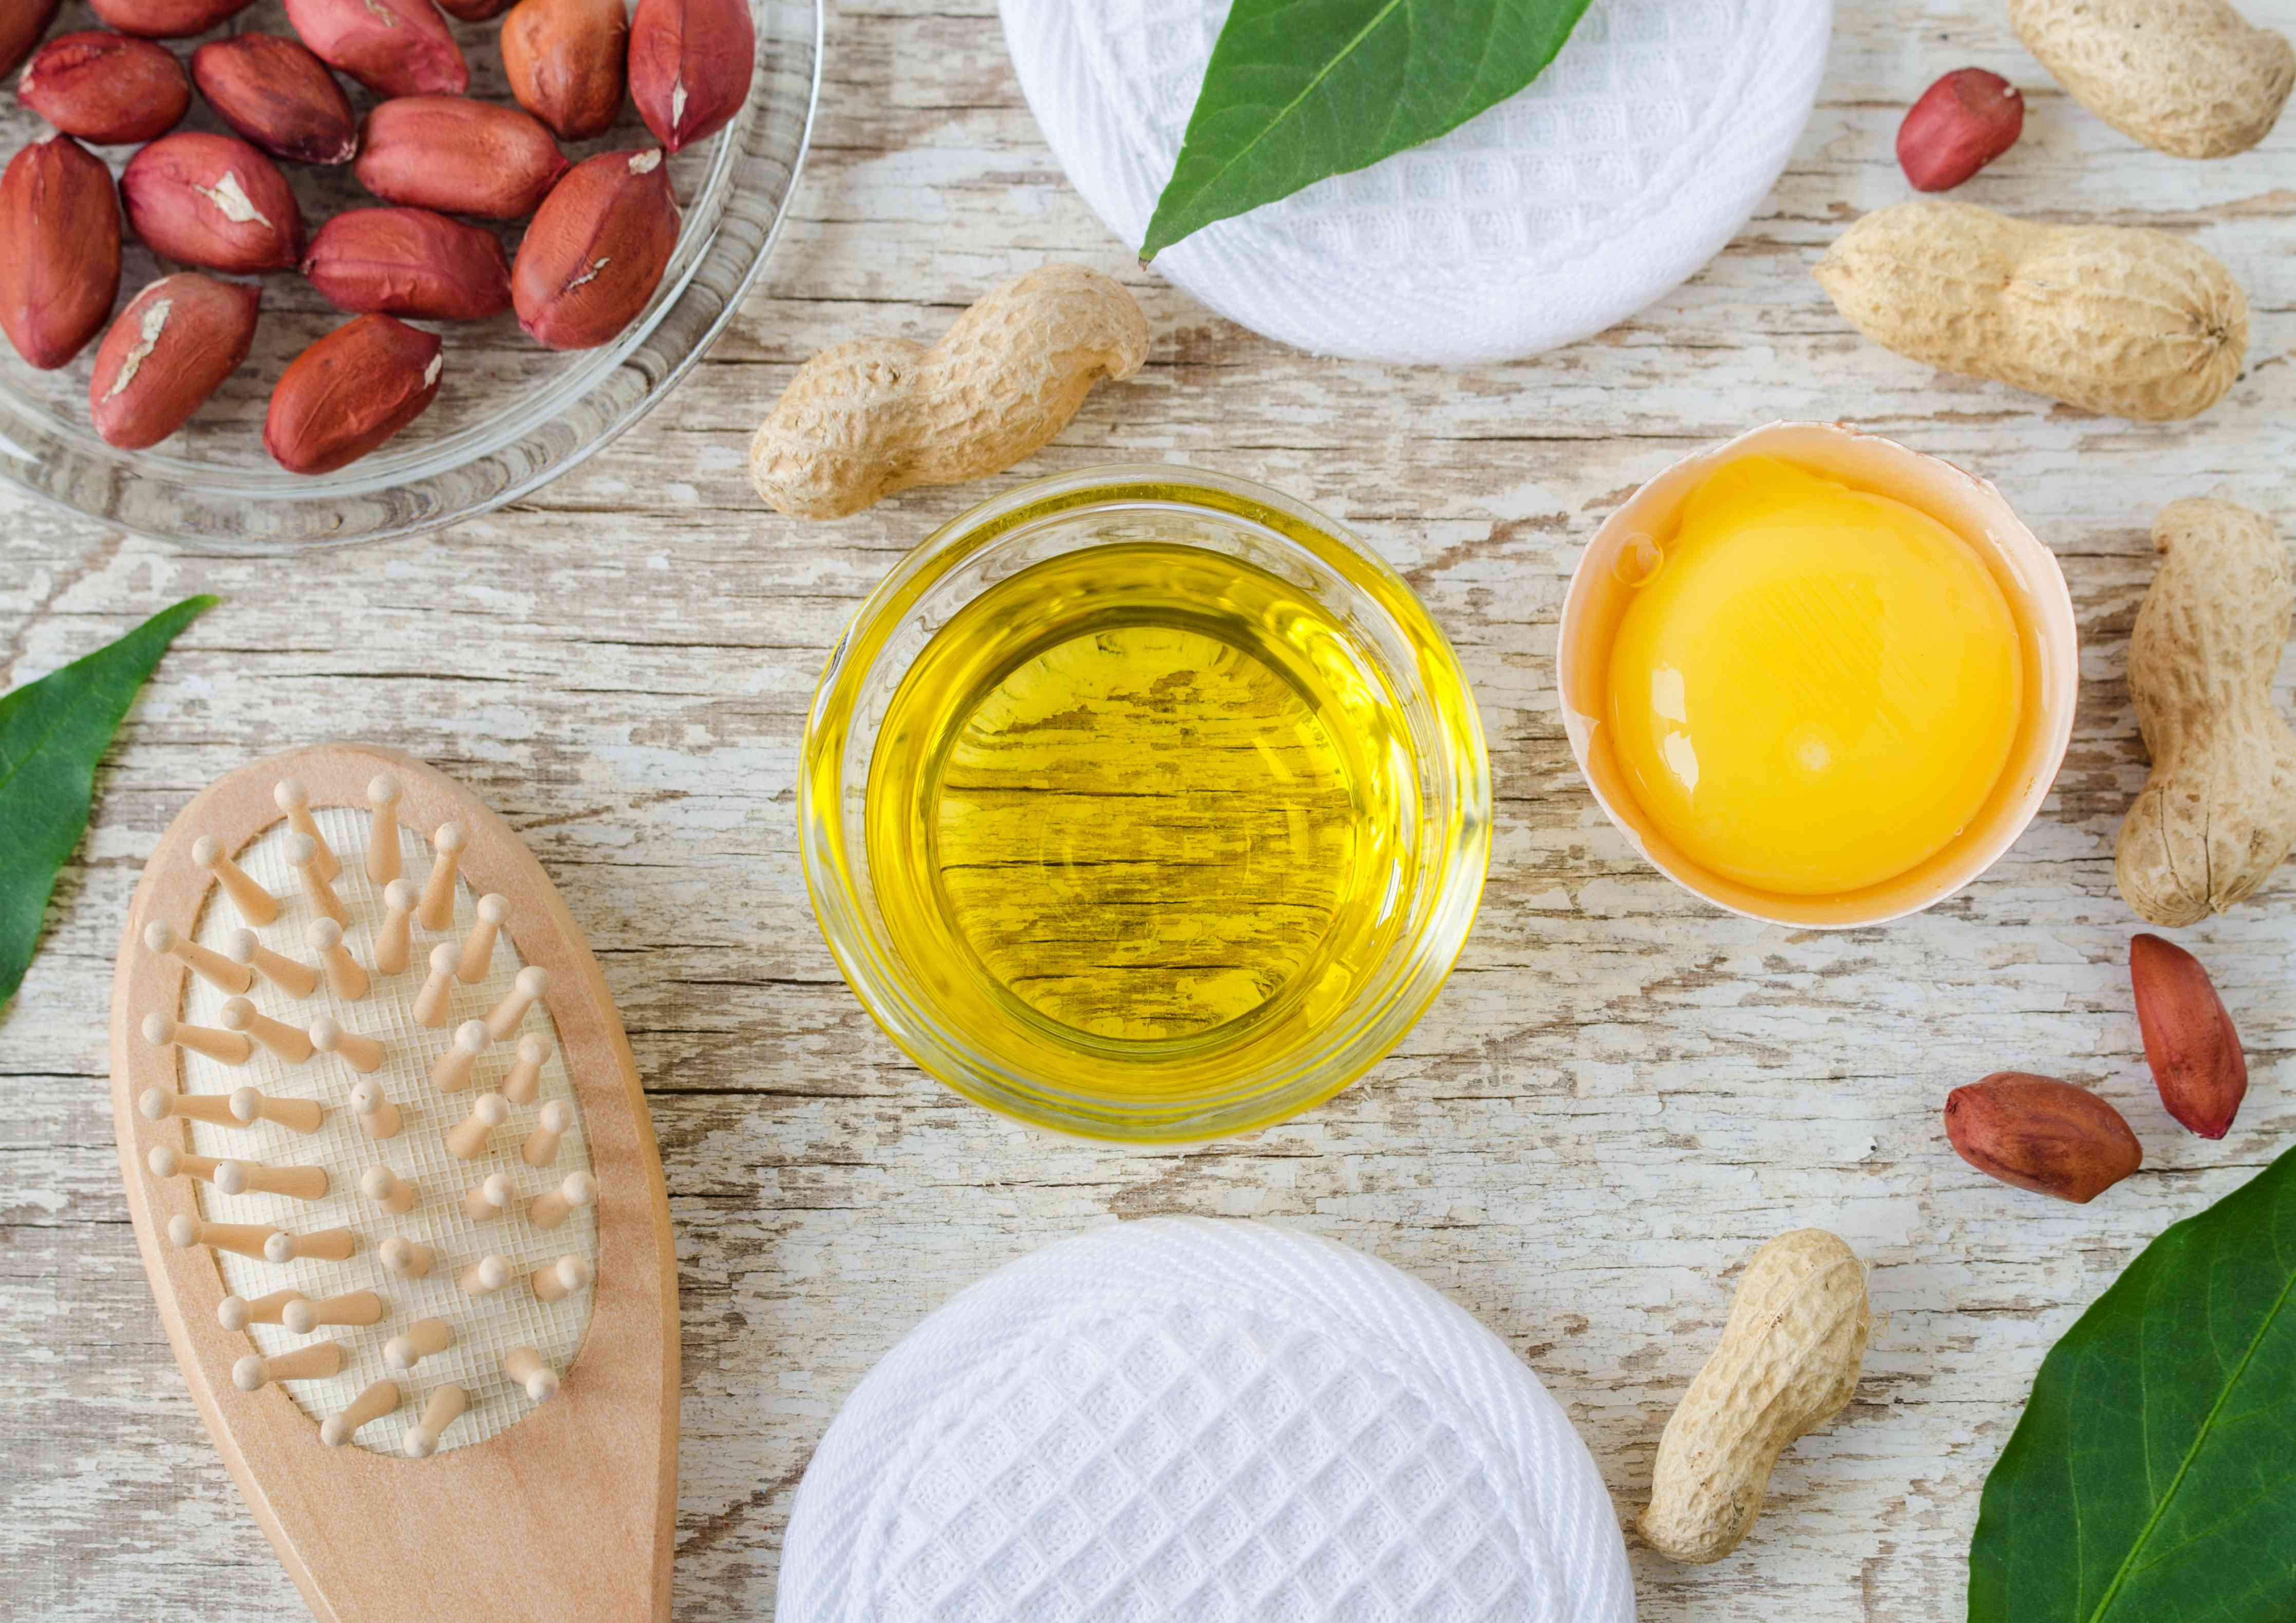 Small glass bowl with cosmetic (cleansing, massage) peanut oil, raw egg and wooden hairbrush. Natural haircare, homemade spa and beauty treatment recipe. Top view, copy space.